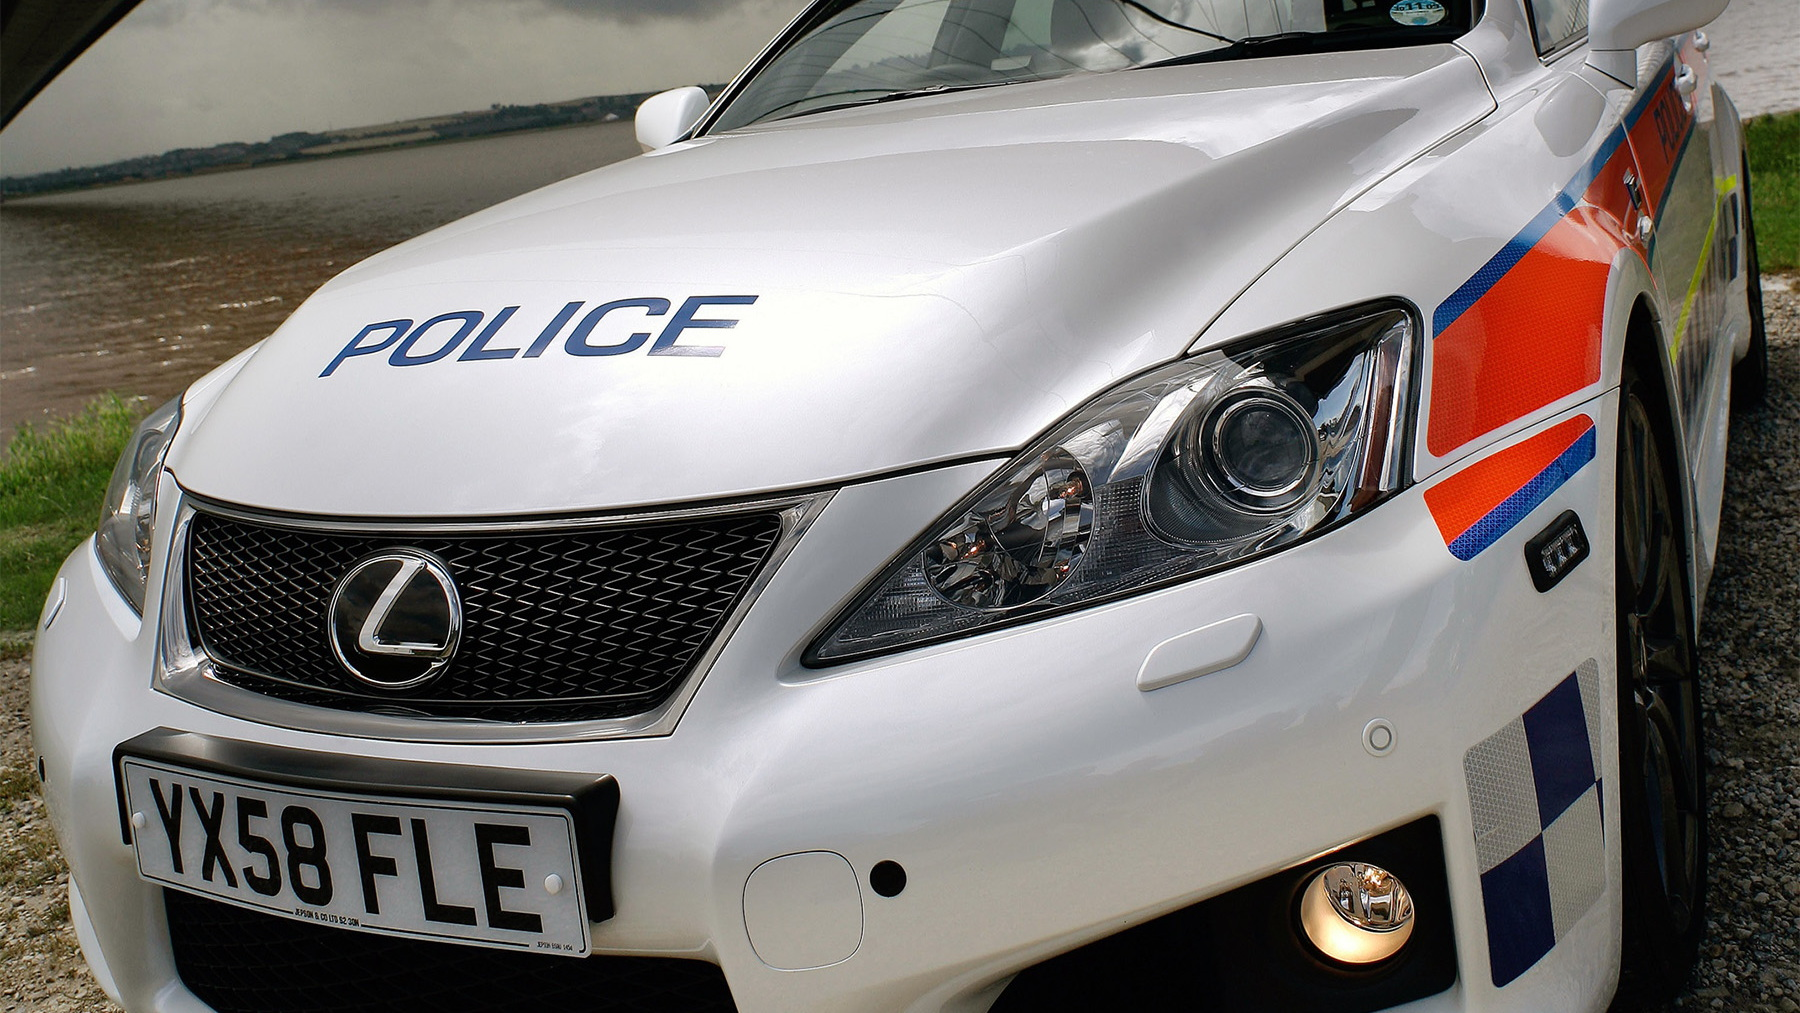 2009 lexus is f police car 002